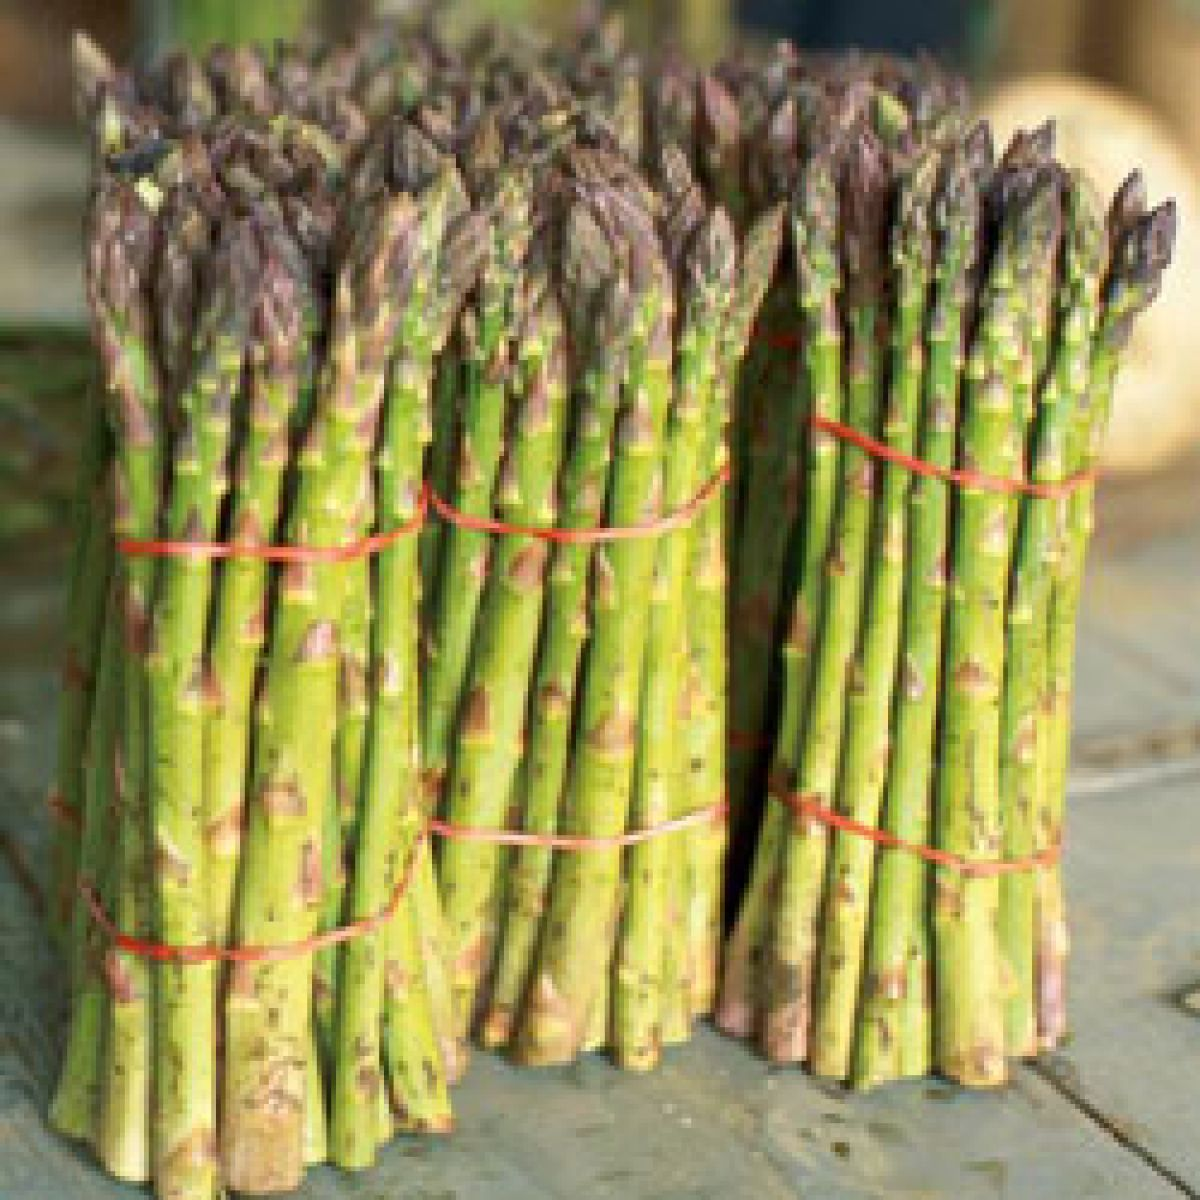 Best Place To Plant Asparagus: VIDEO: How To Ribbon Asparagus